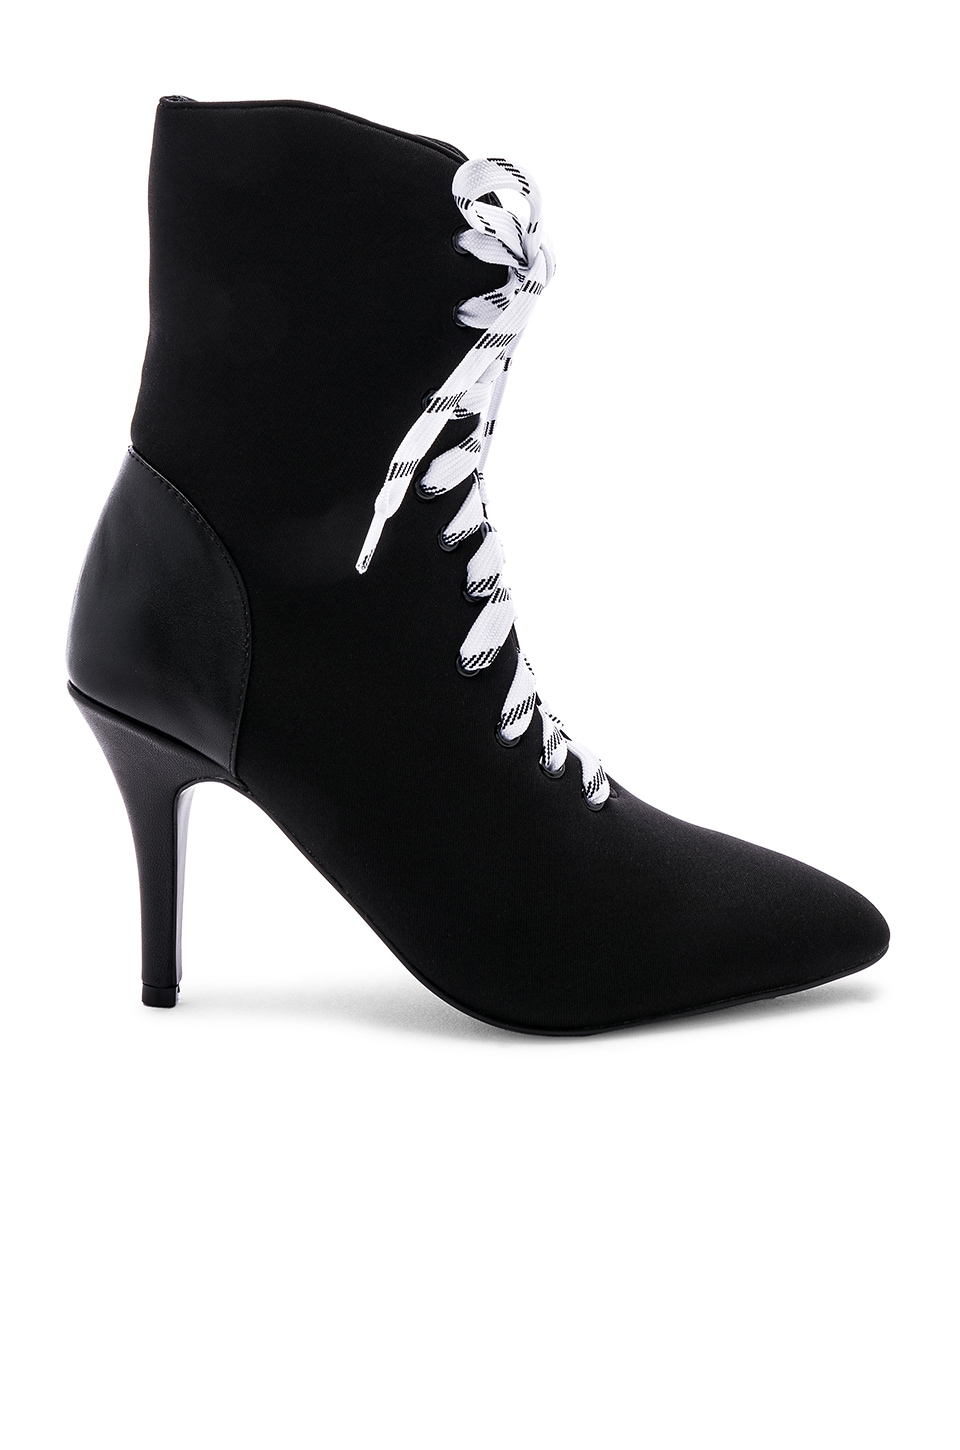 JAGGAR Fasten Lace Up Boot in Black